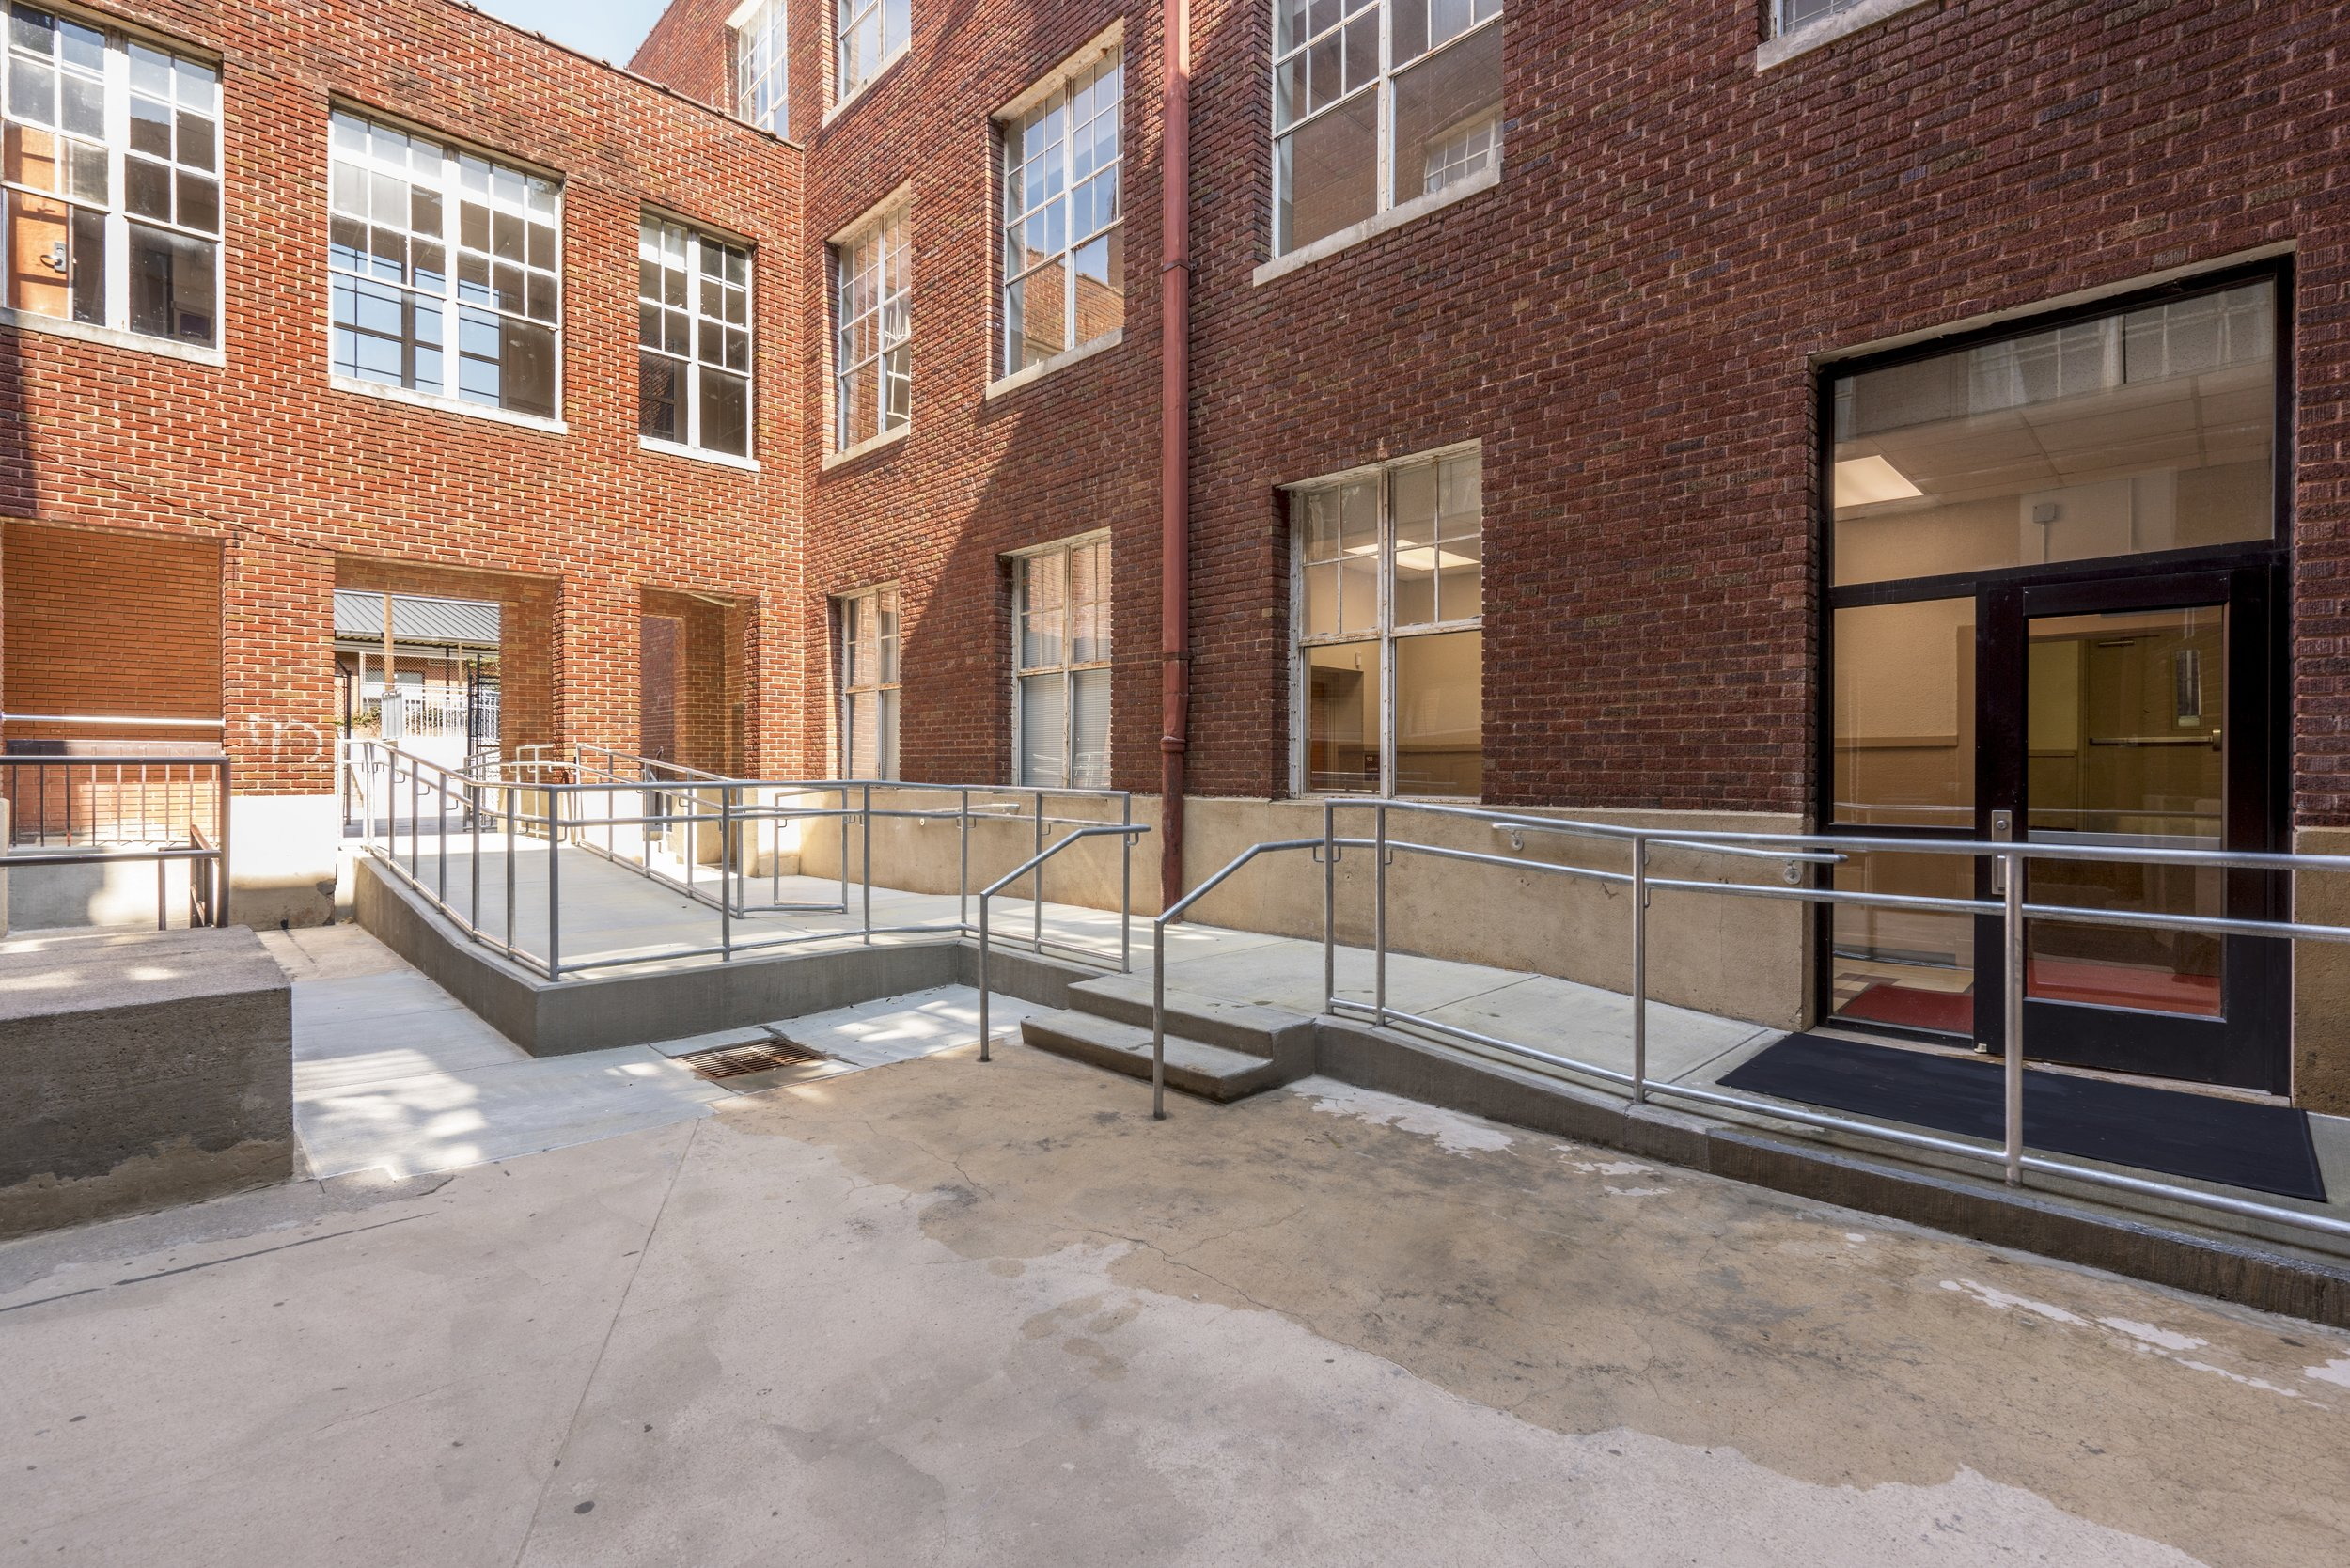 EXTERIOR HANDICAP ACCESSIBLE RAMPS added ramps in courtyard